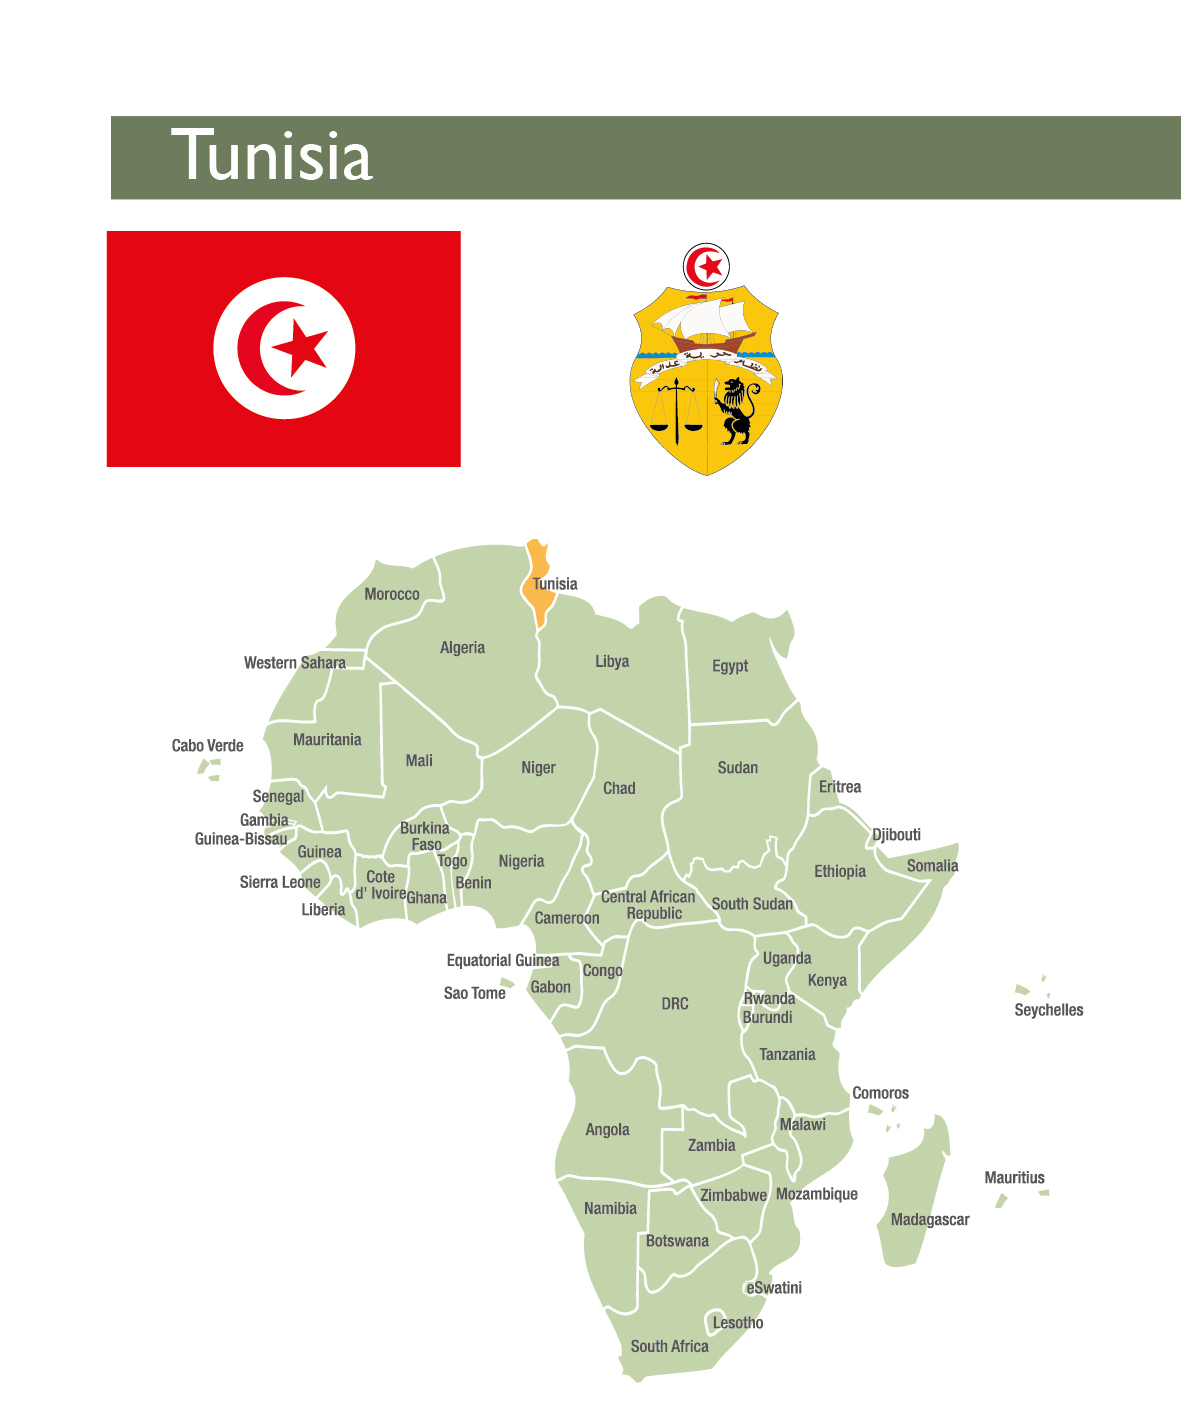 Tunisia - CAHF | Centre for Affordable Housing Finance Africa